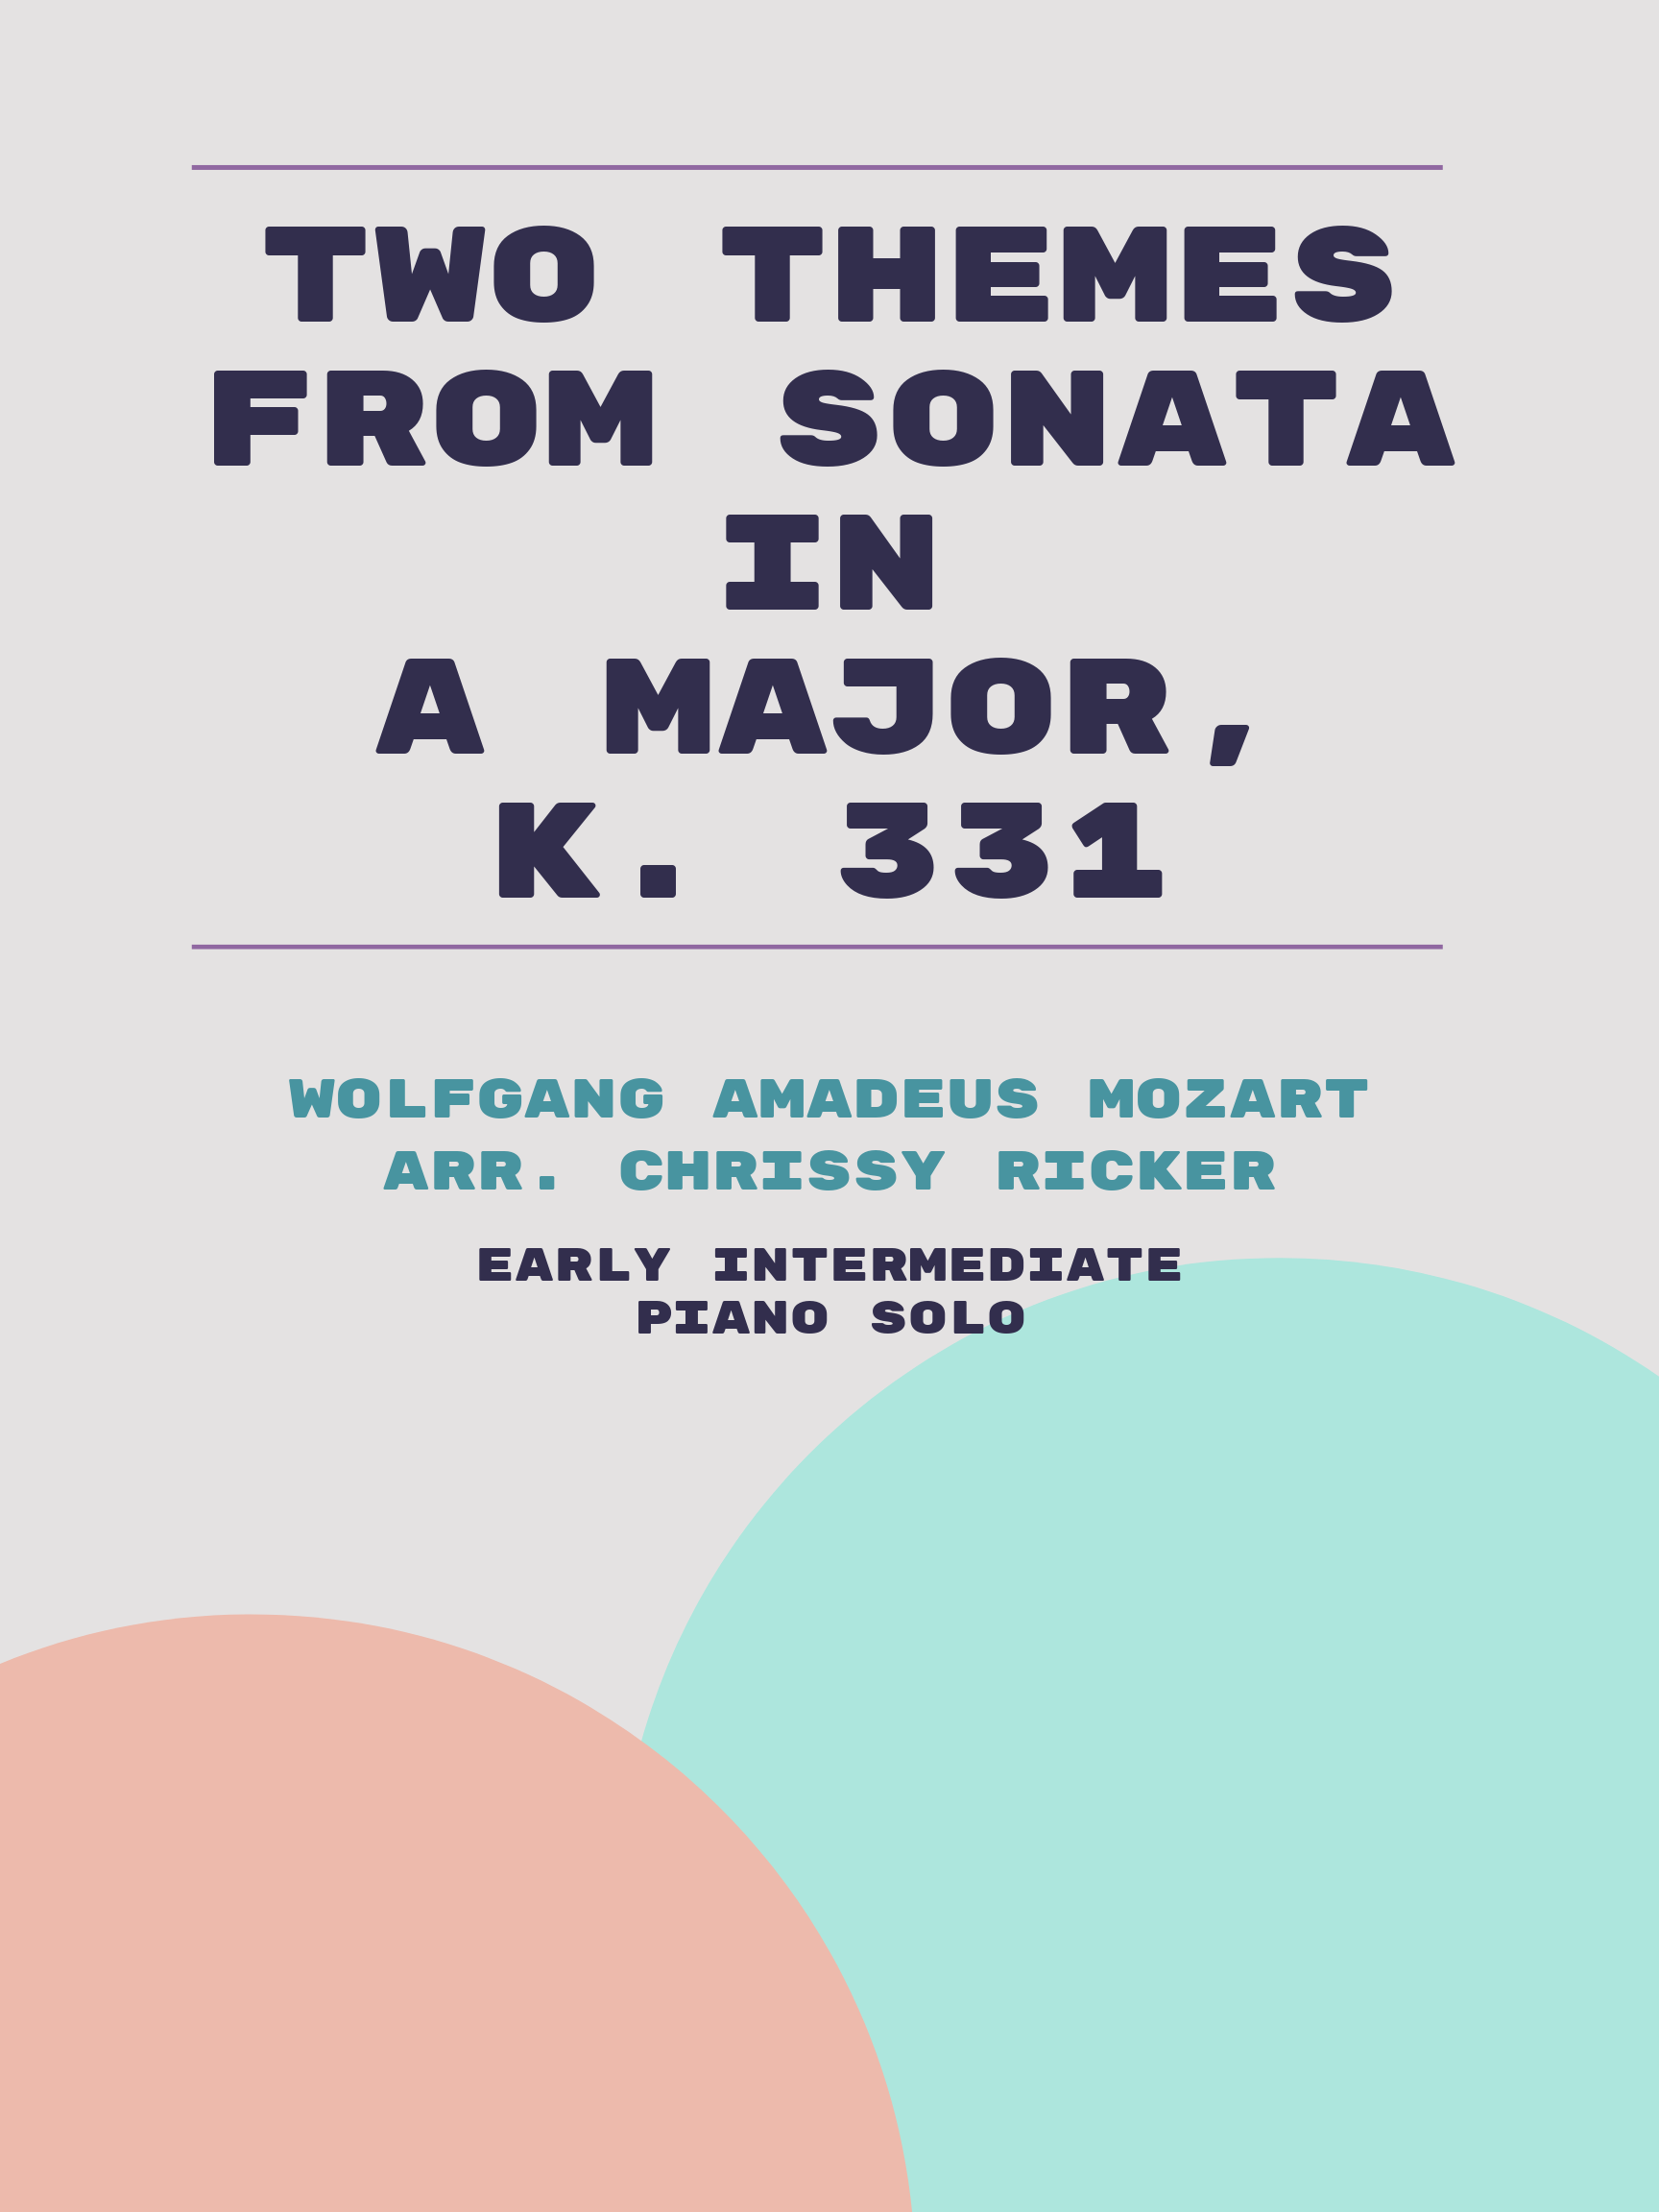 Two Themes from Sonata in A Major, K. 331 by Wolfgang Amadeus Mozart